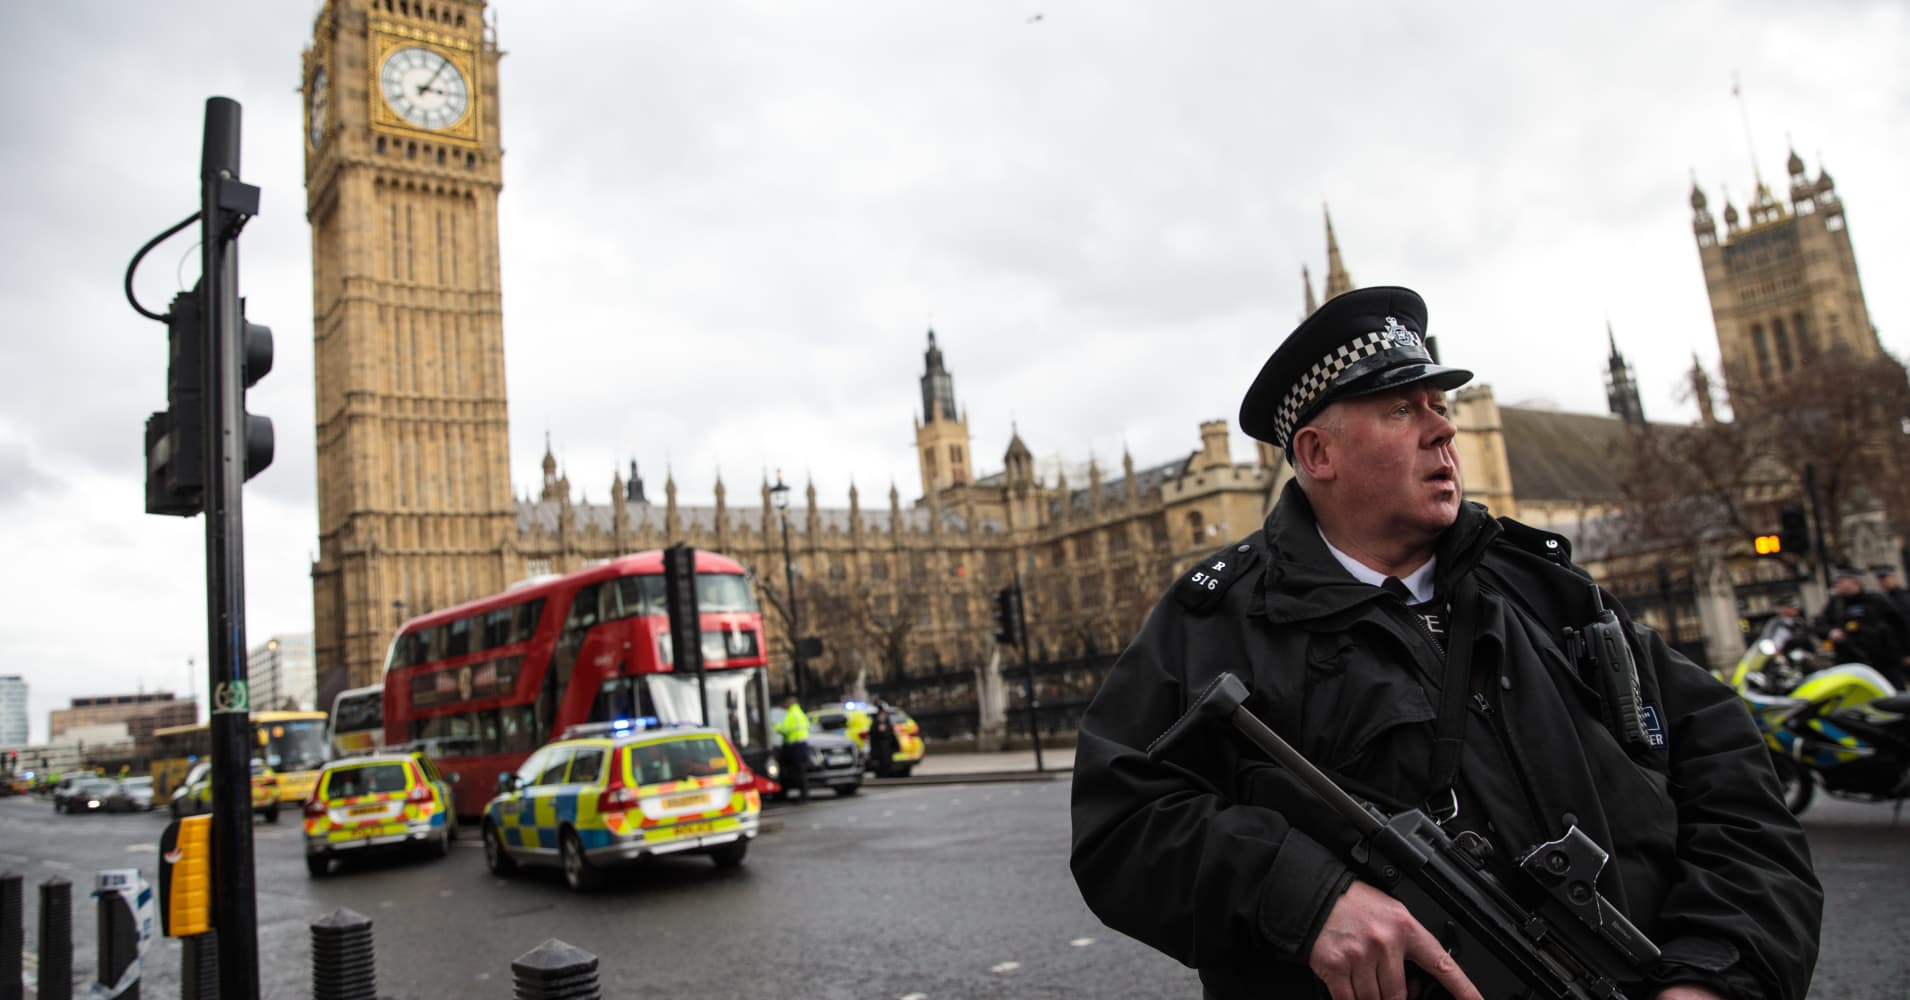 An armed police officer stands guard near Westminster Bridge and the Houses of Parliament on March 22, 2017 in London, England.